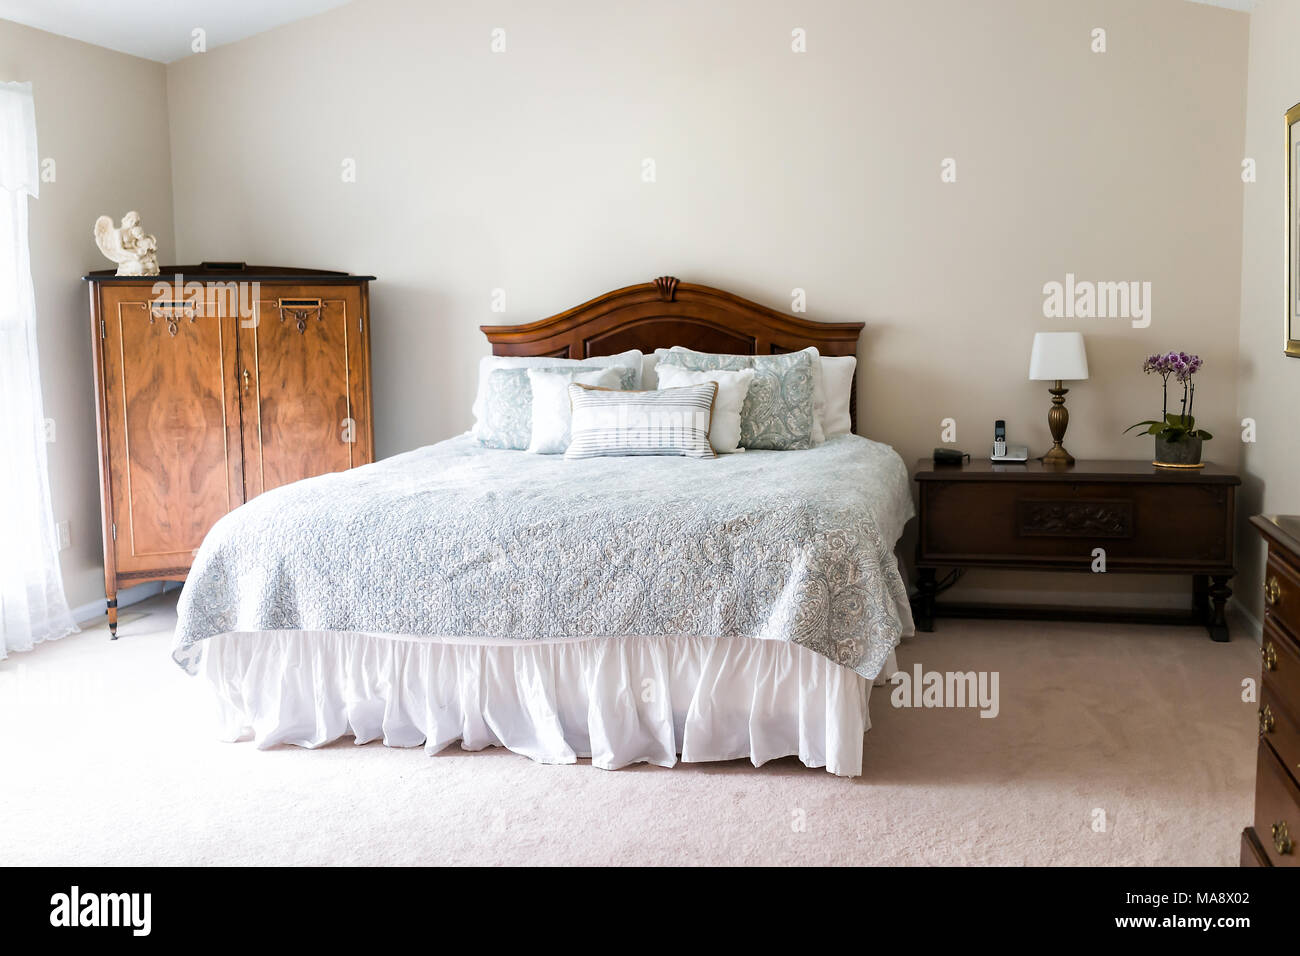 Closeup of new bed with headboard, decorative pillows, comforter, in ...